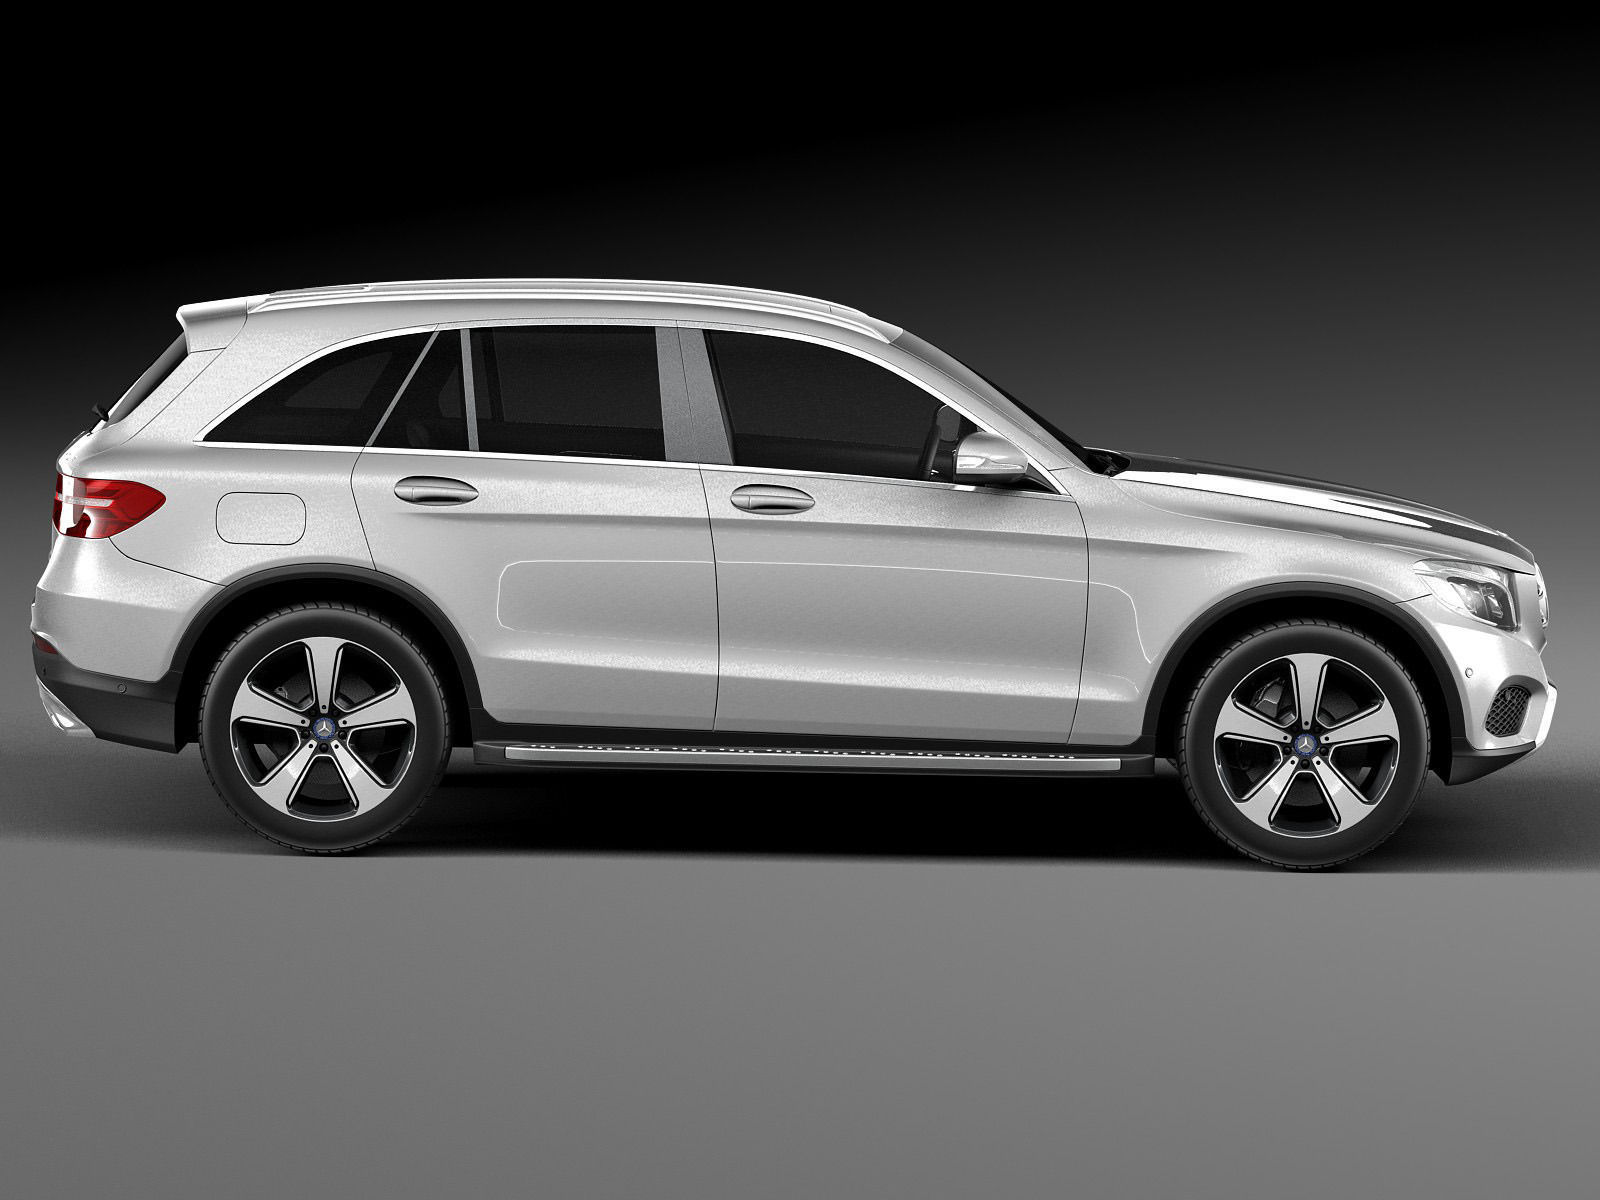 Mercedes benz glc 2016 3d model max obj 3ds fbx c4d for Mercedes benz suv models